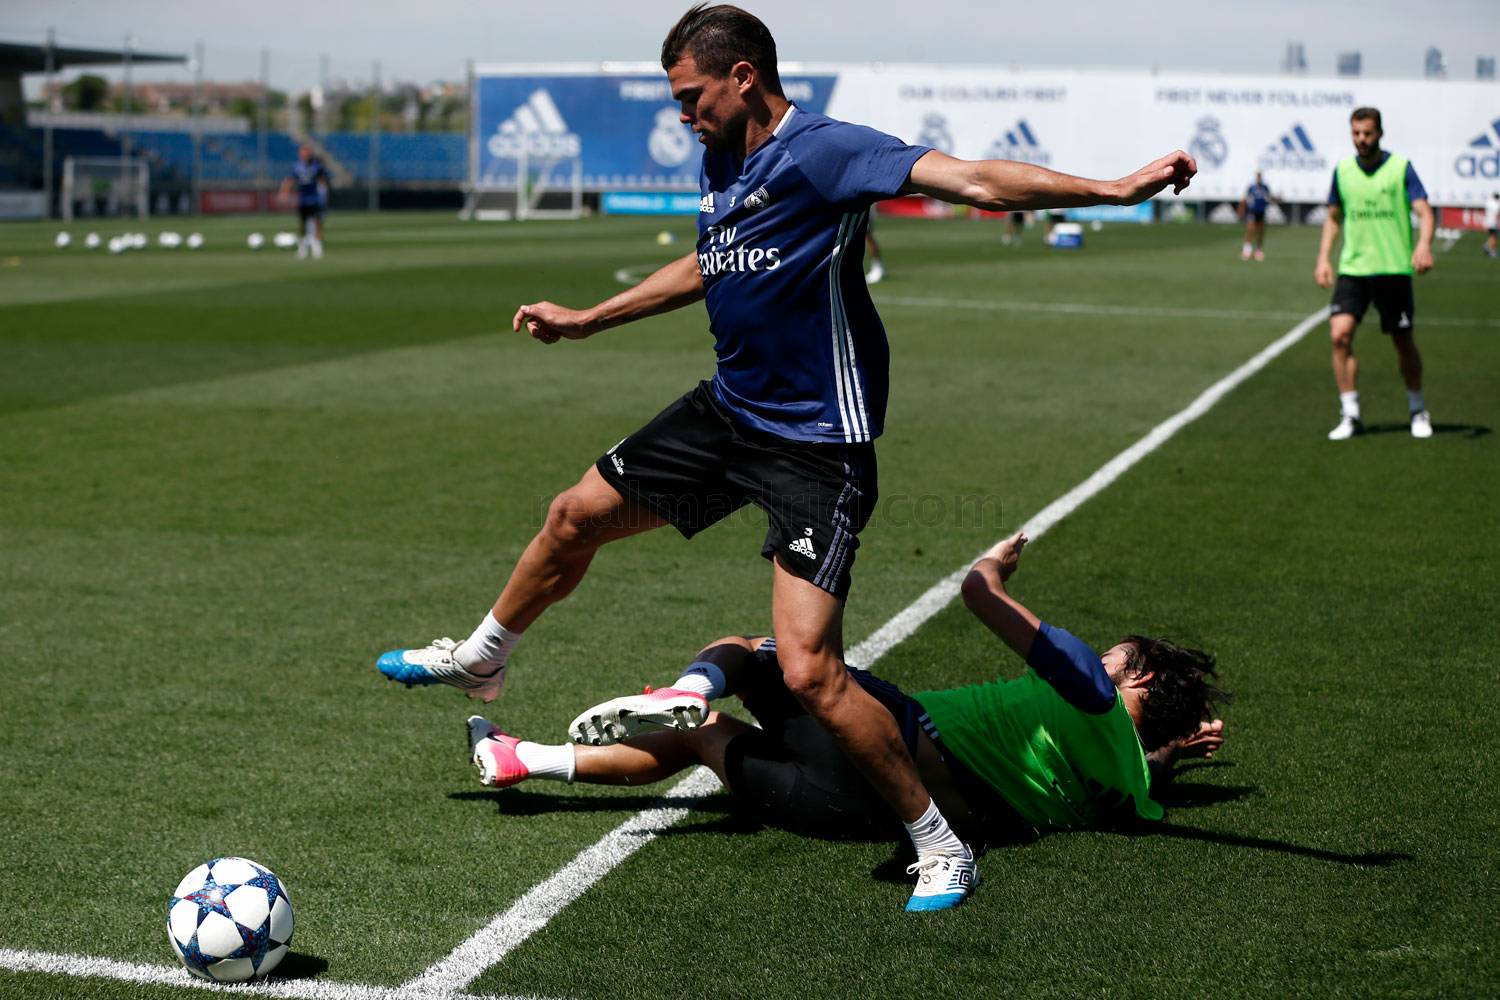 Real Madrid - Entrenamiento del Real Madrid - 25-05-2017